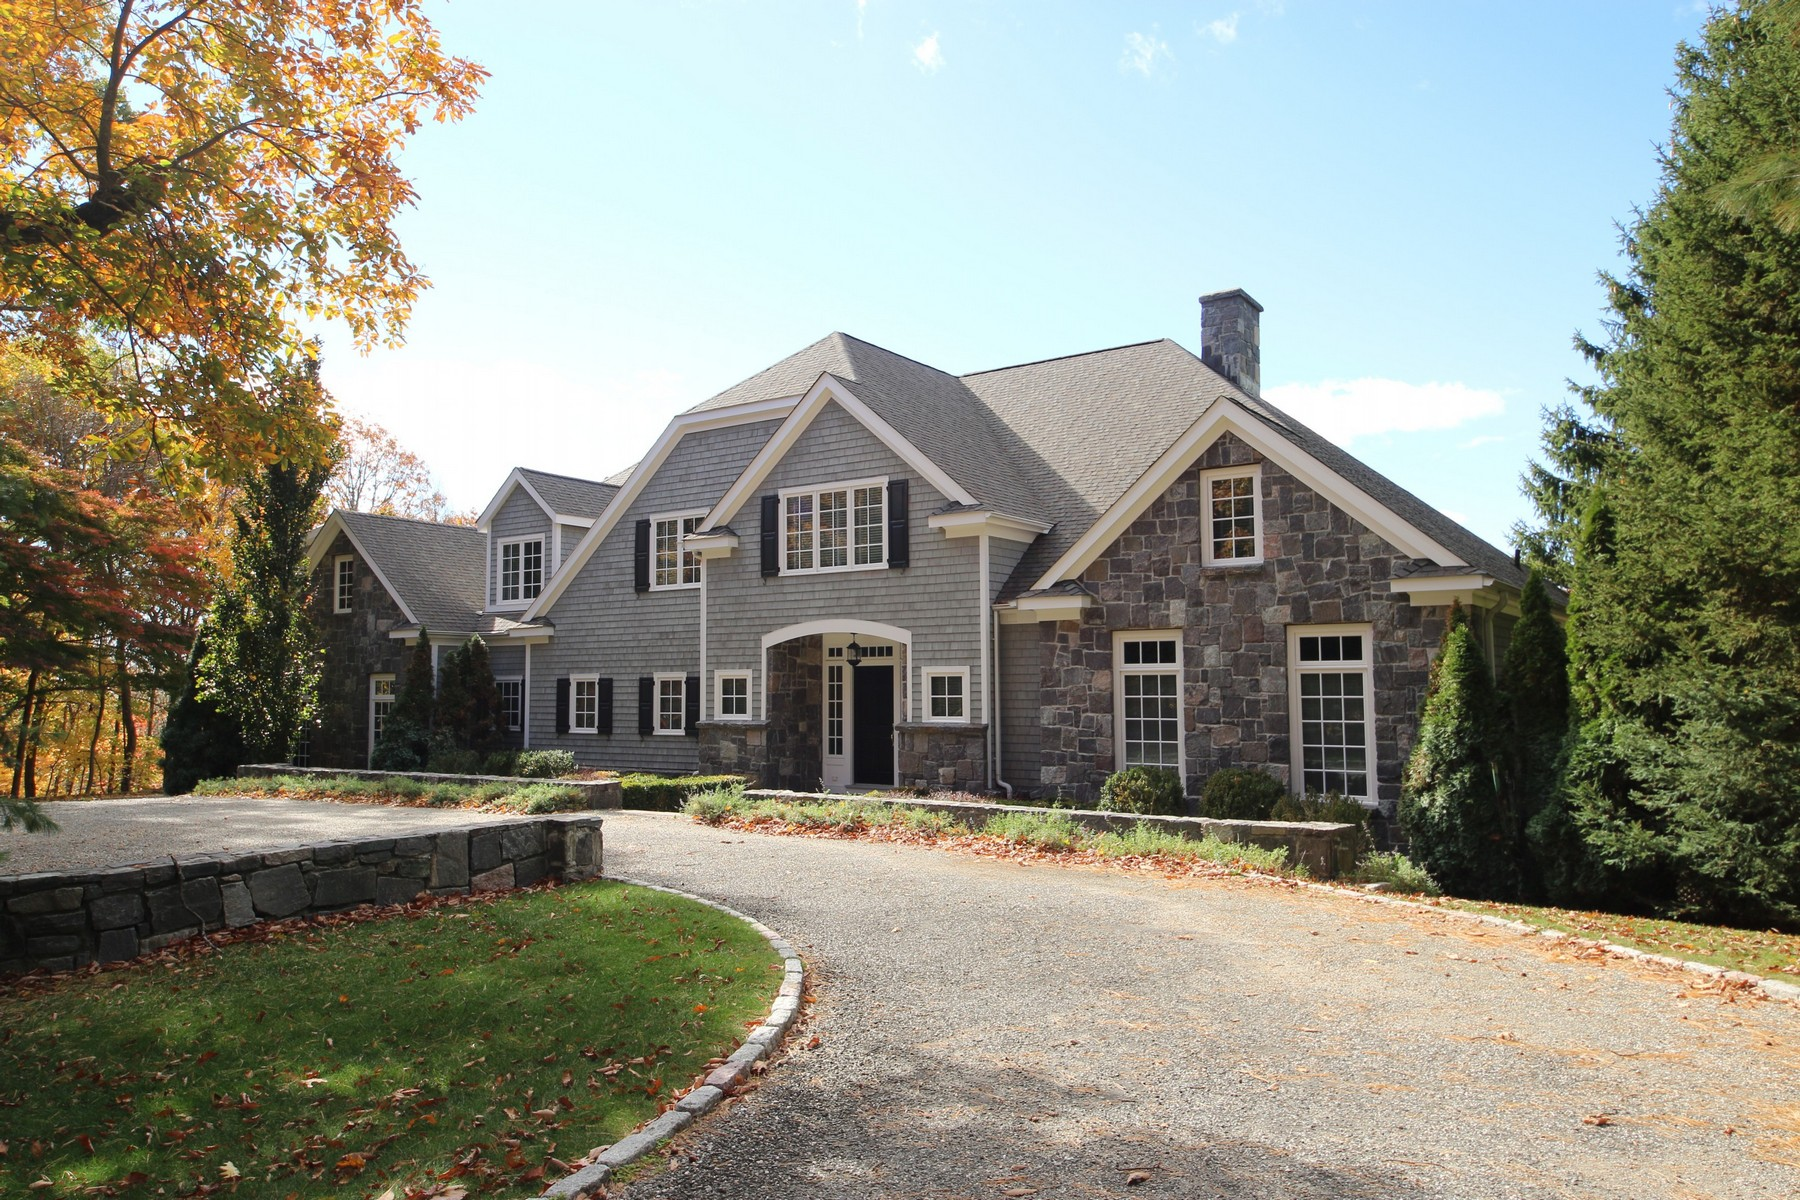 Single Family Home for Sale at Elegant Stone & Shingle Home 96 Round Lake Road Ridgefield, Connecticut, 06877 United States